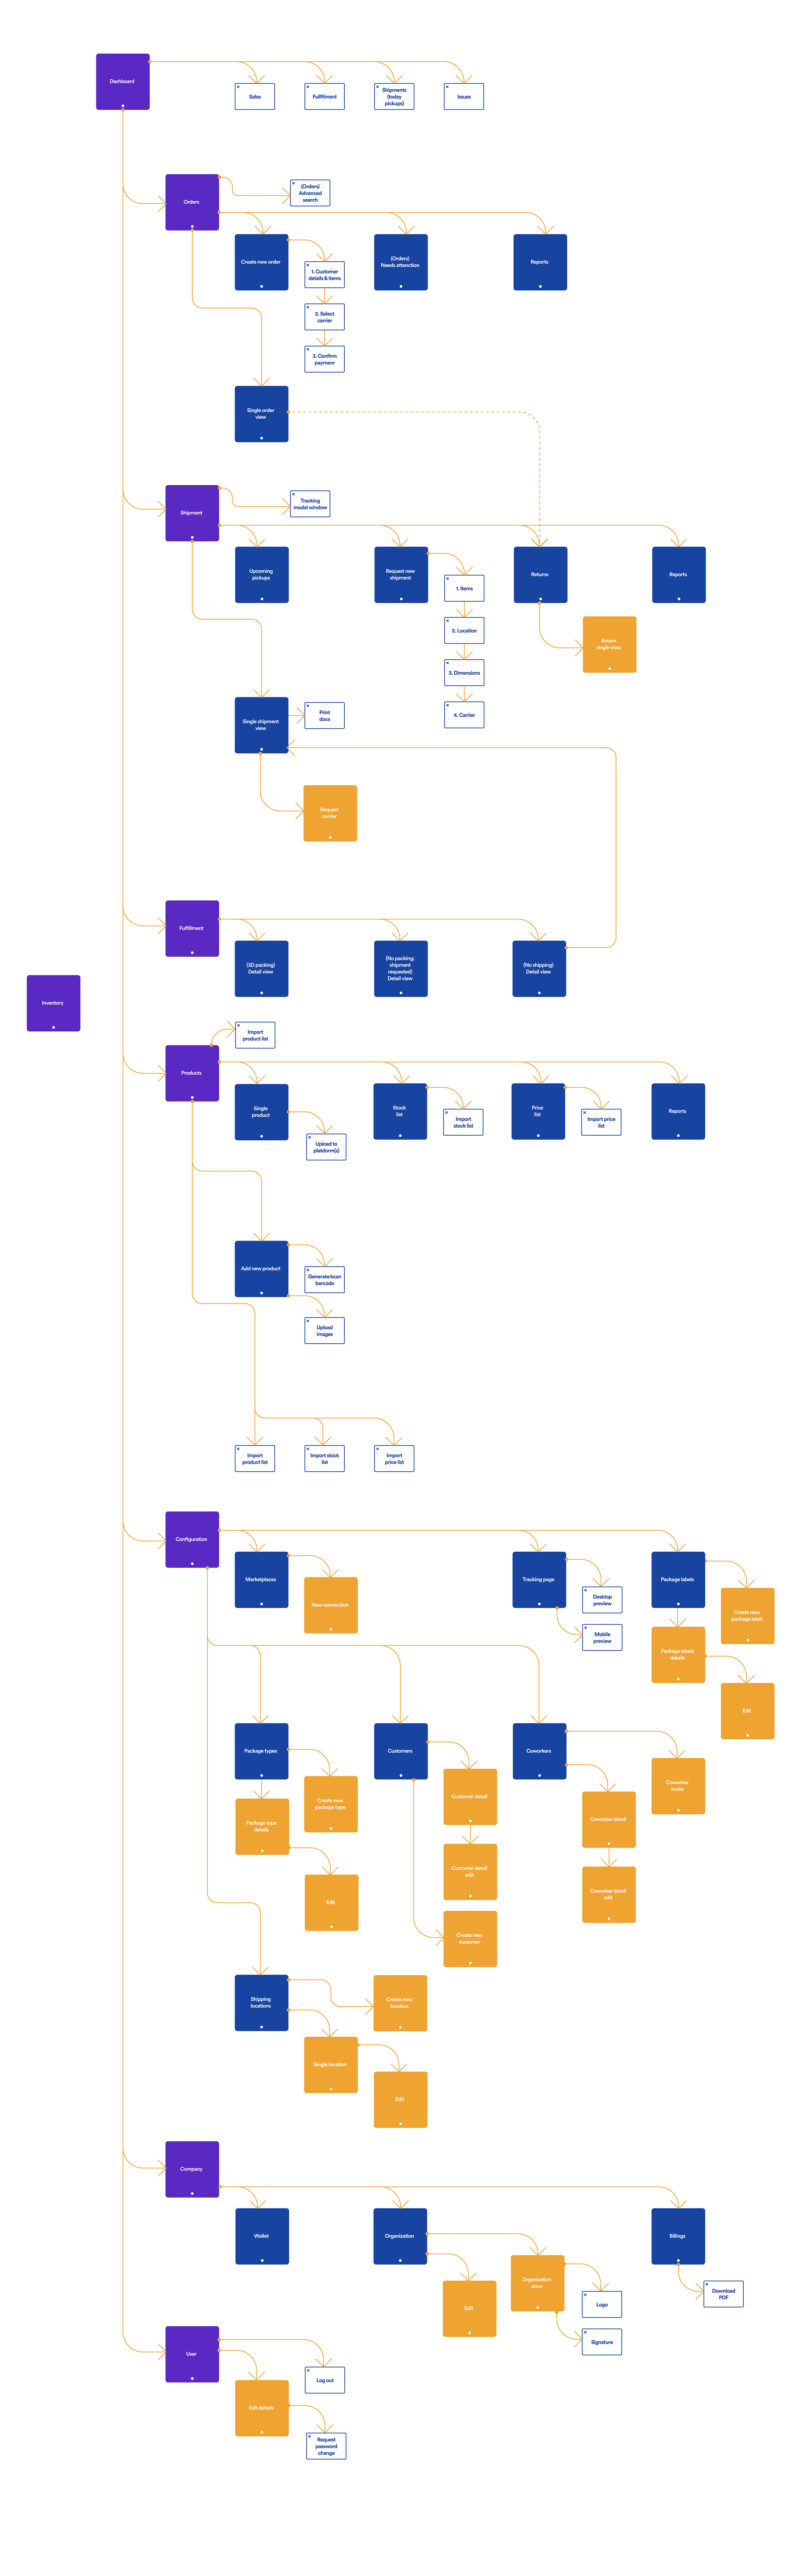 Siid—Sitemap@2x